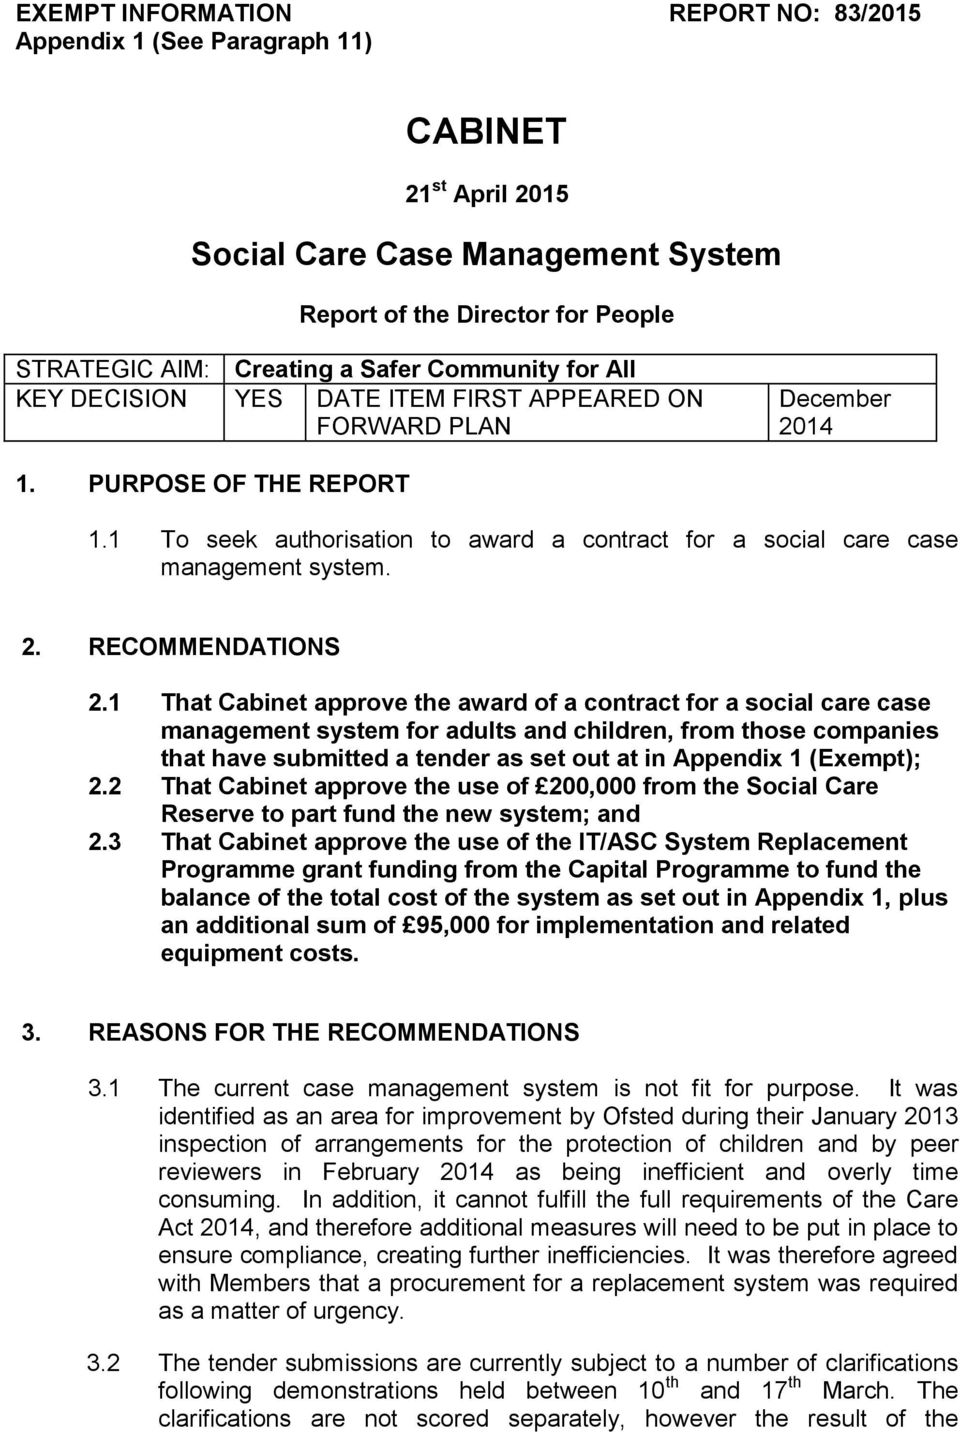 1 To seek authorisation to award a contract for a social care case management system. 2. RECOMMENDATIONS 2.